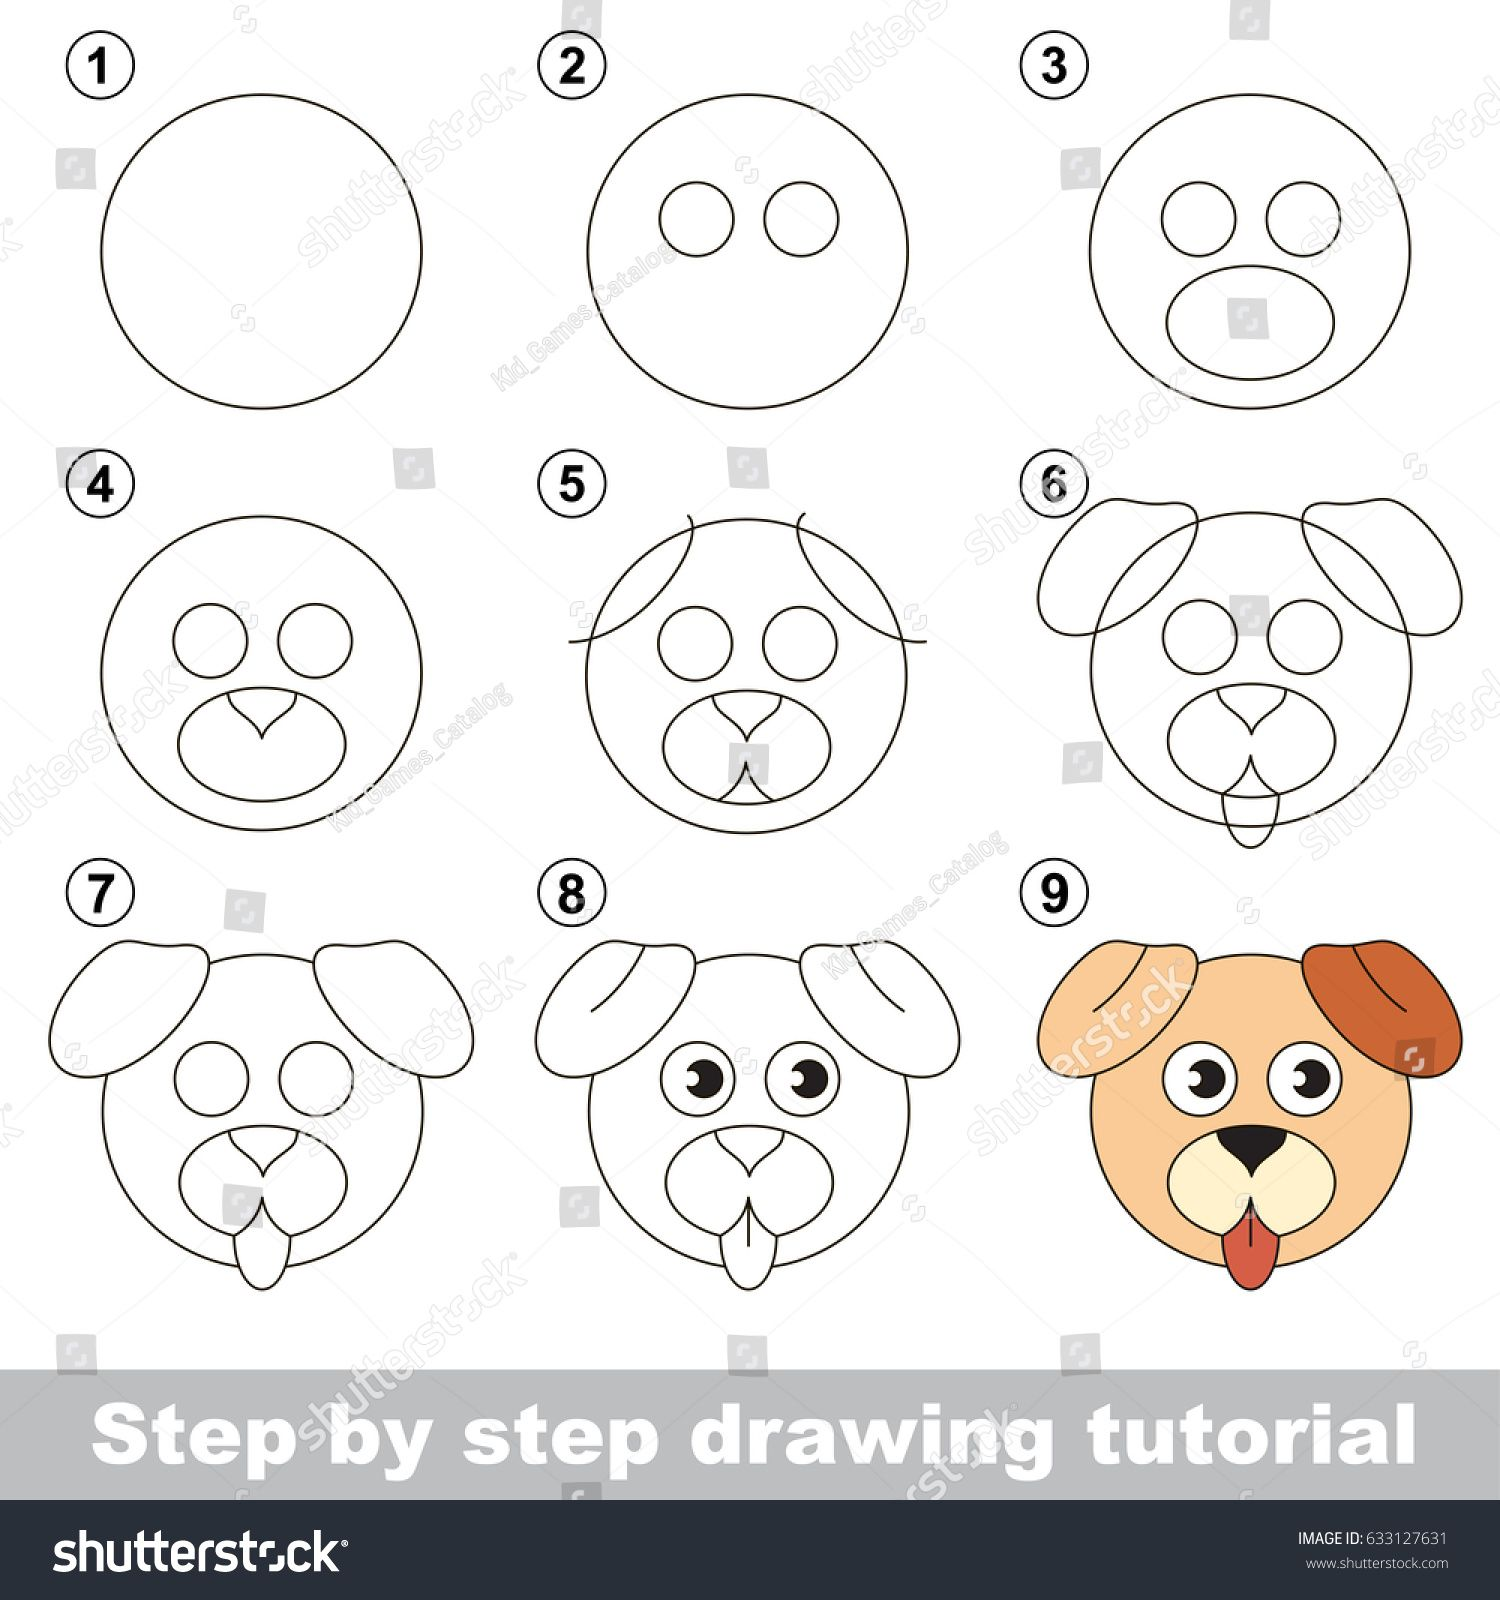 Kid game to develop drawing skill with easy gaming level for preschool kids, drawing educational tutori…   Easy drawings, Easy drawings for kids, Puppy drawing easy